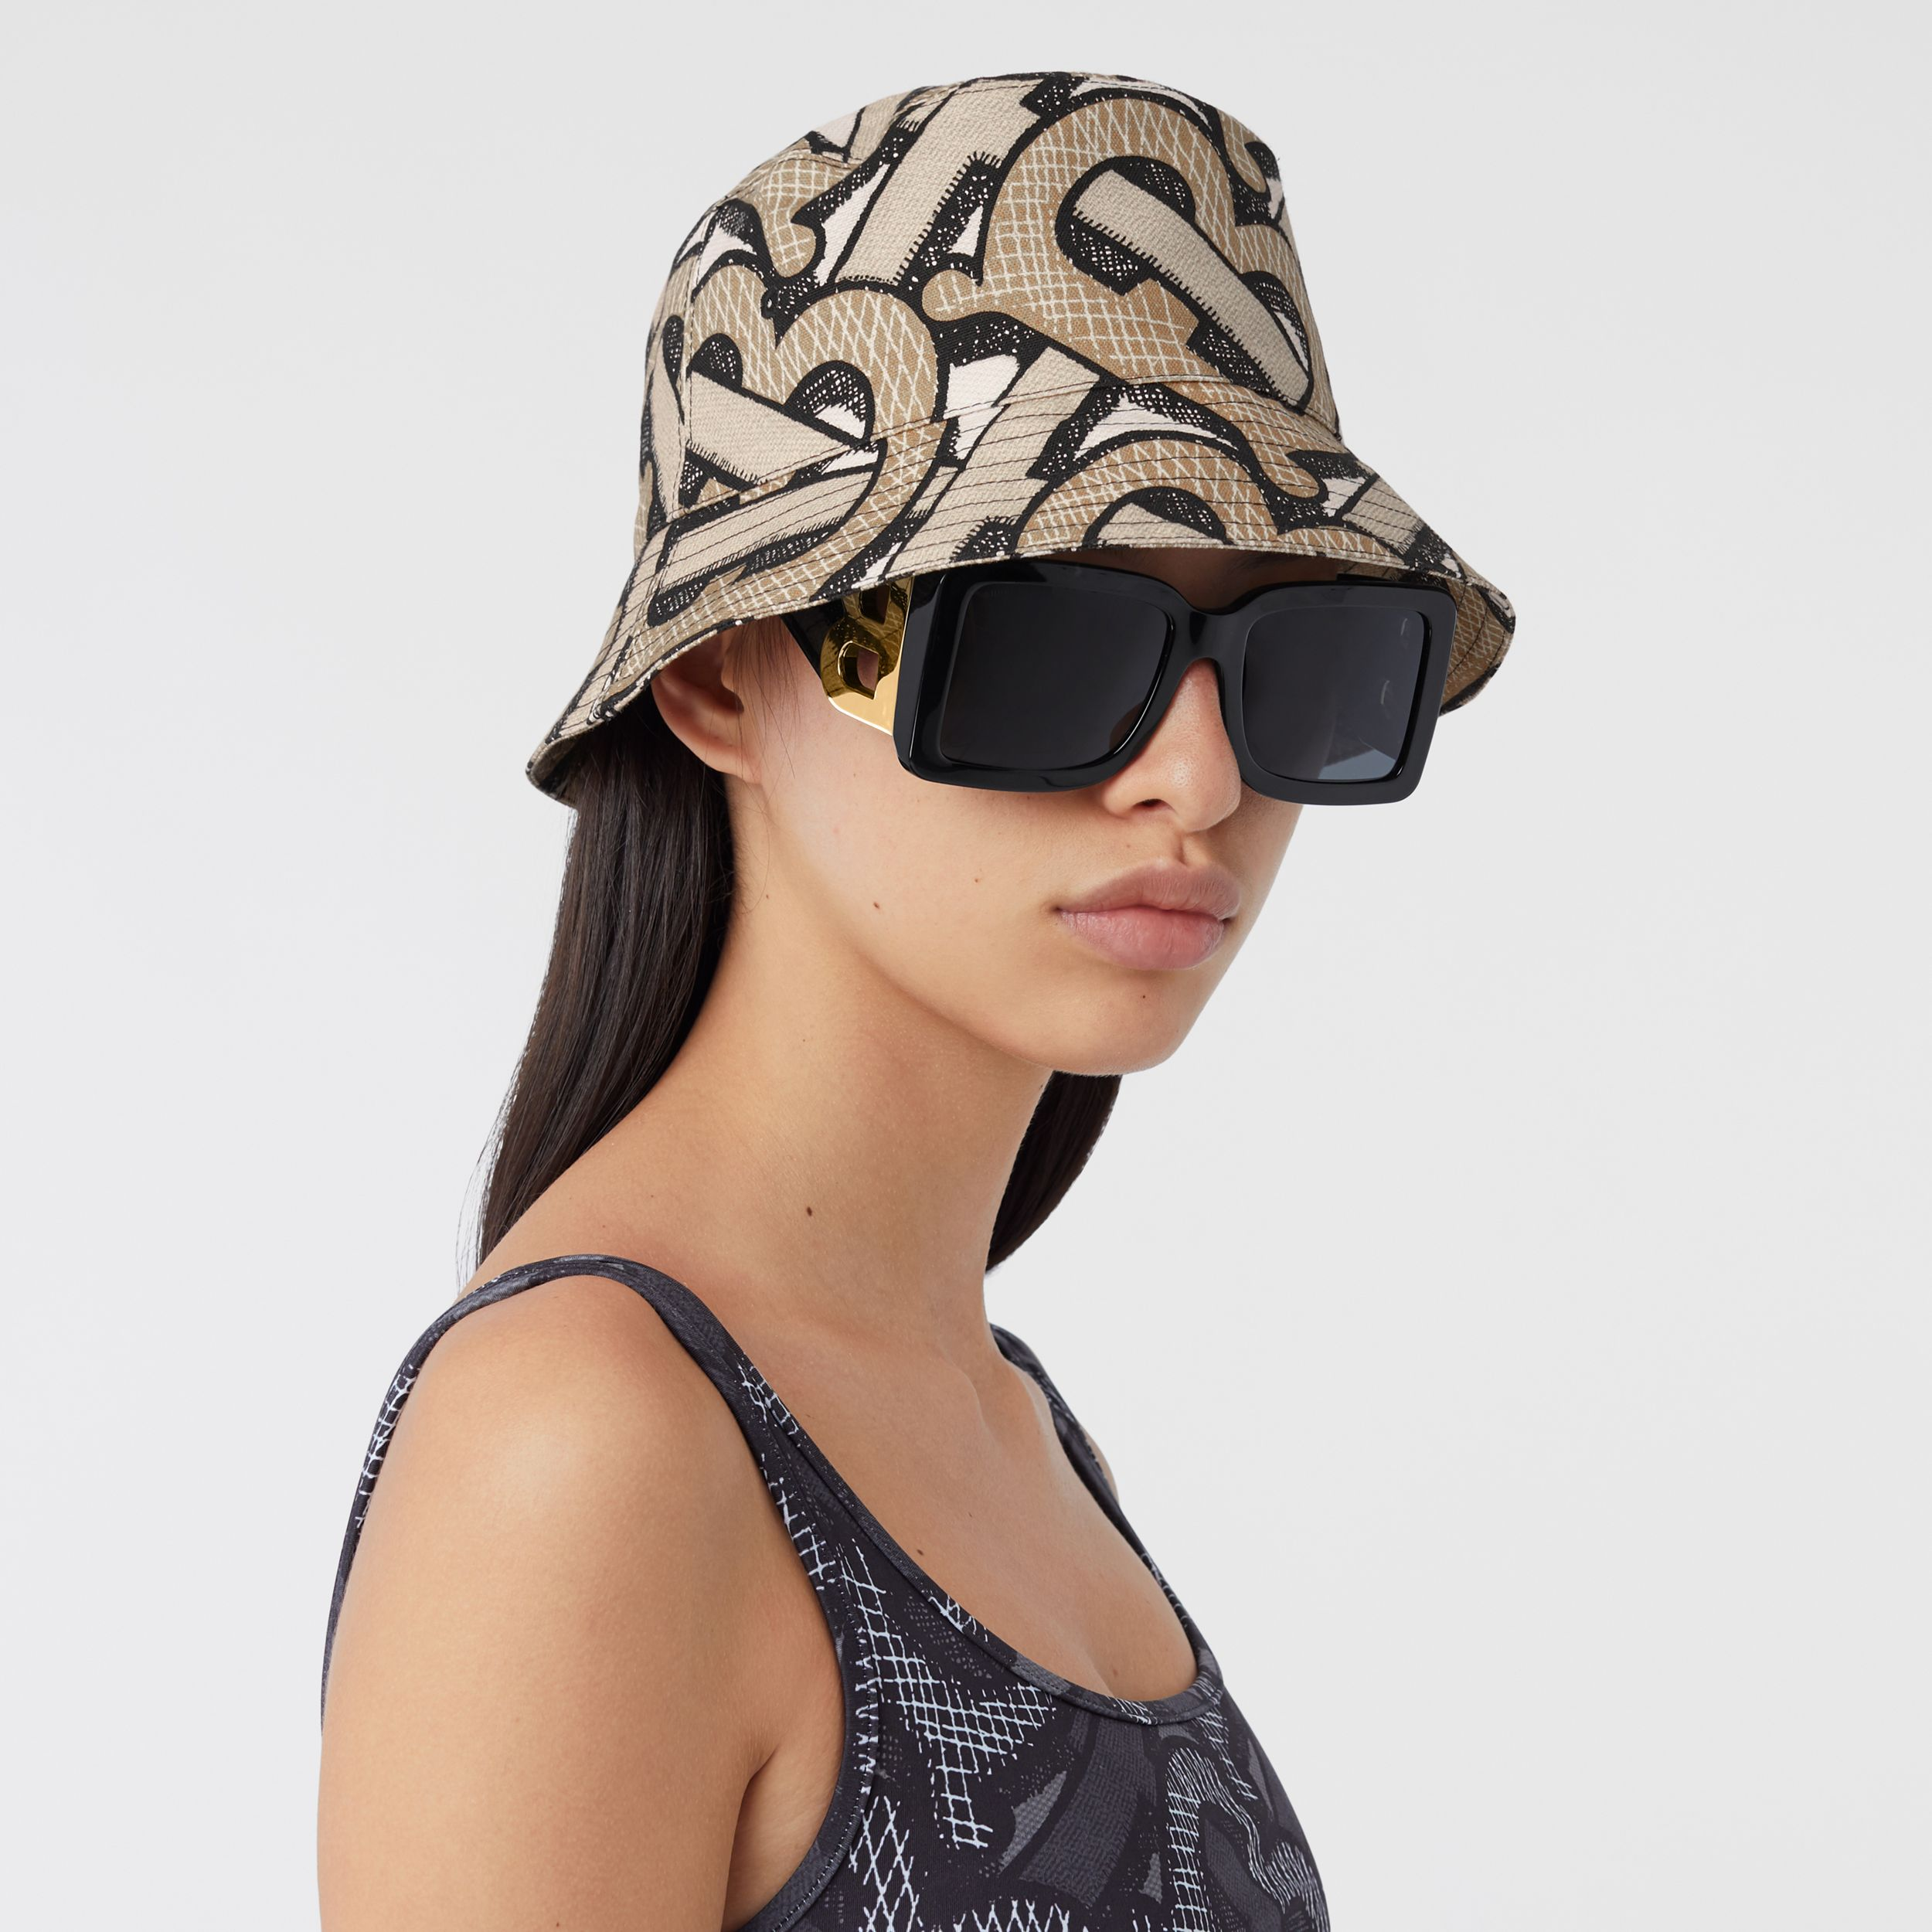 Monogram Print Cotton Canvas Bucket Hat in Dark Beige | Burberry Singapore - 3